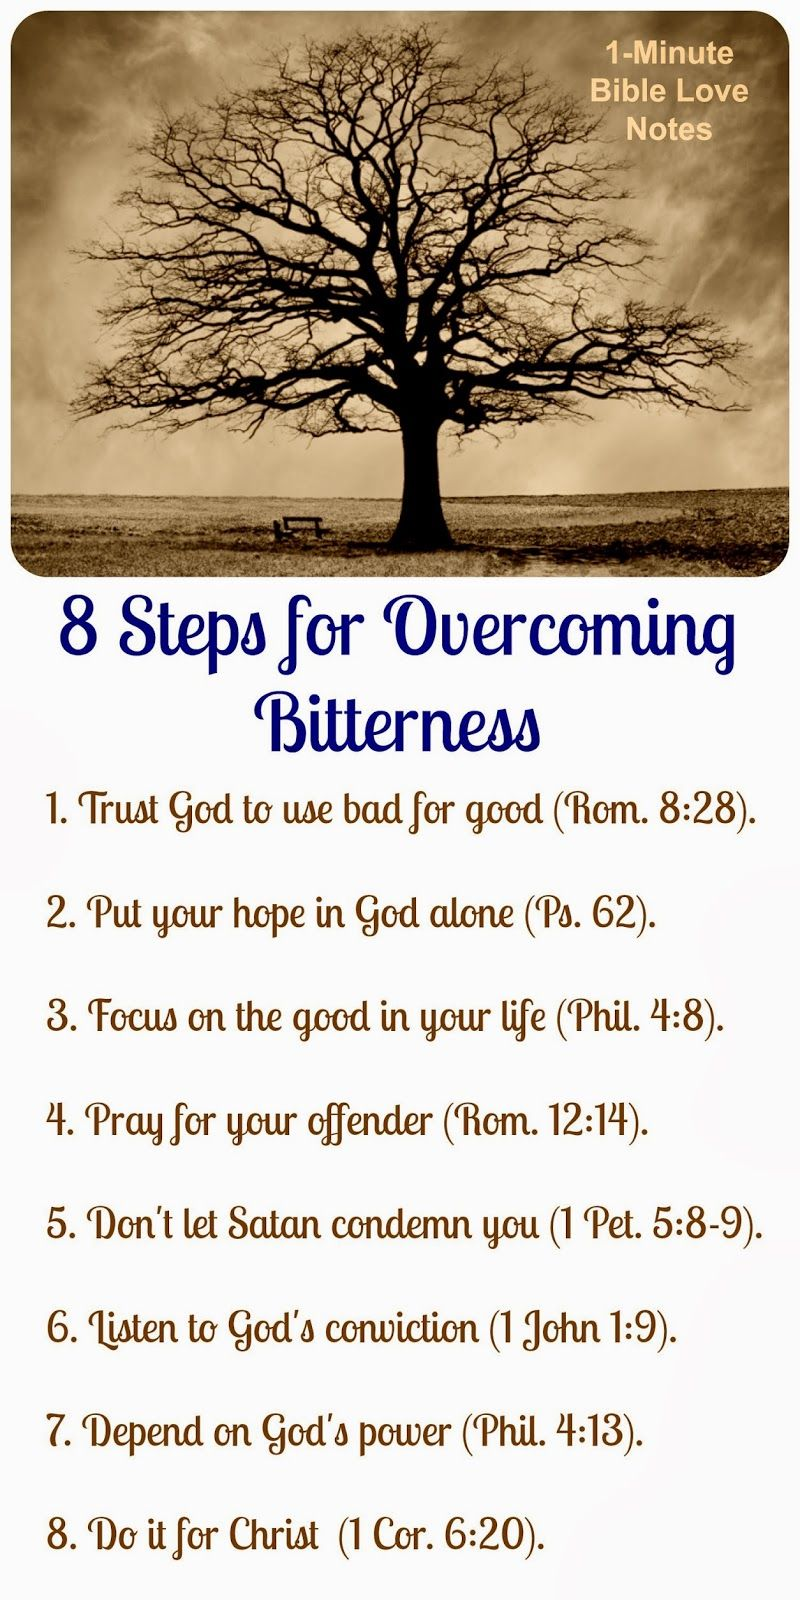 Quotes About Bitterness: 8 Steps To Overcome Bitterness